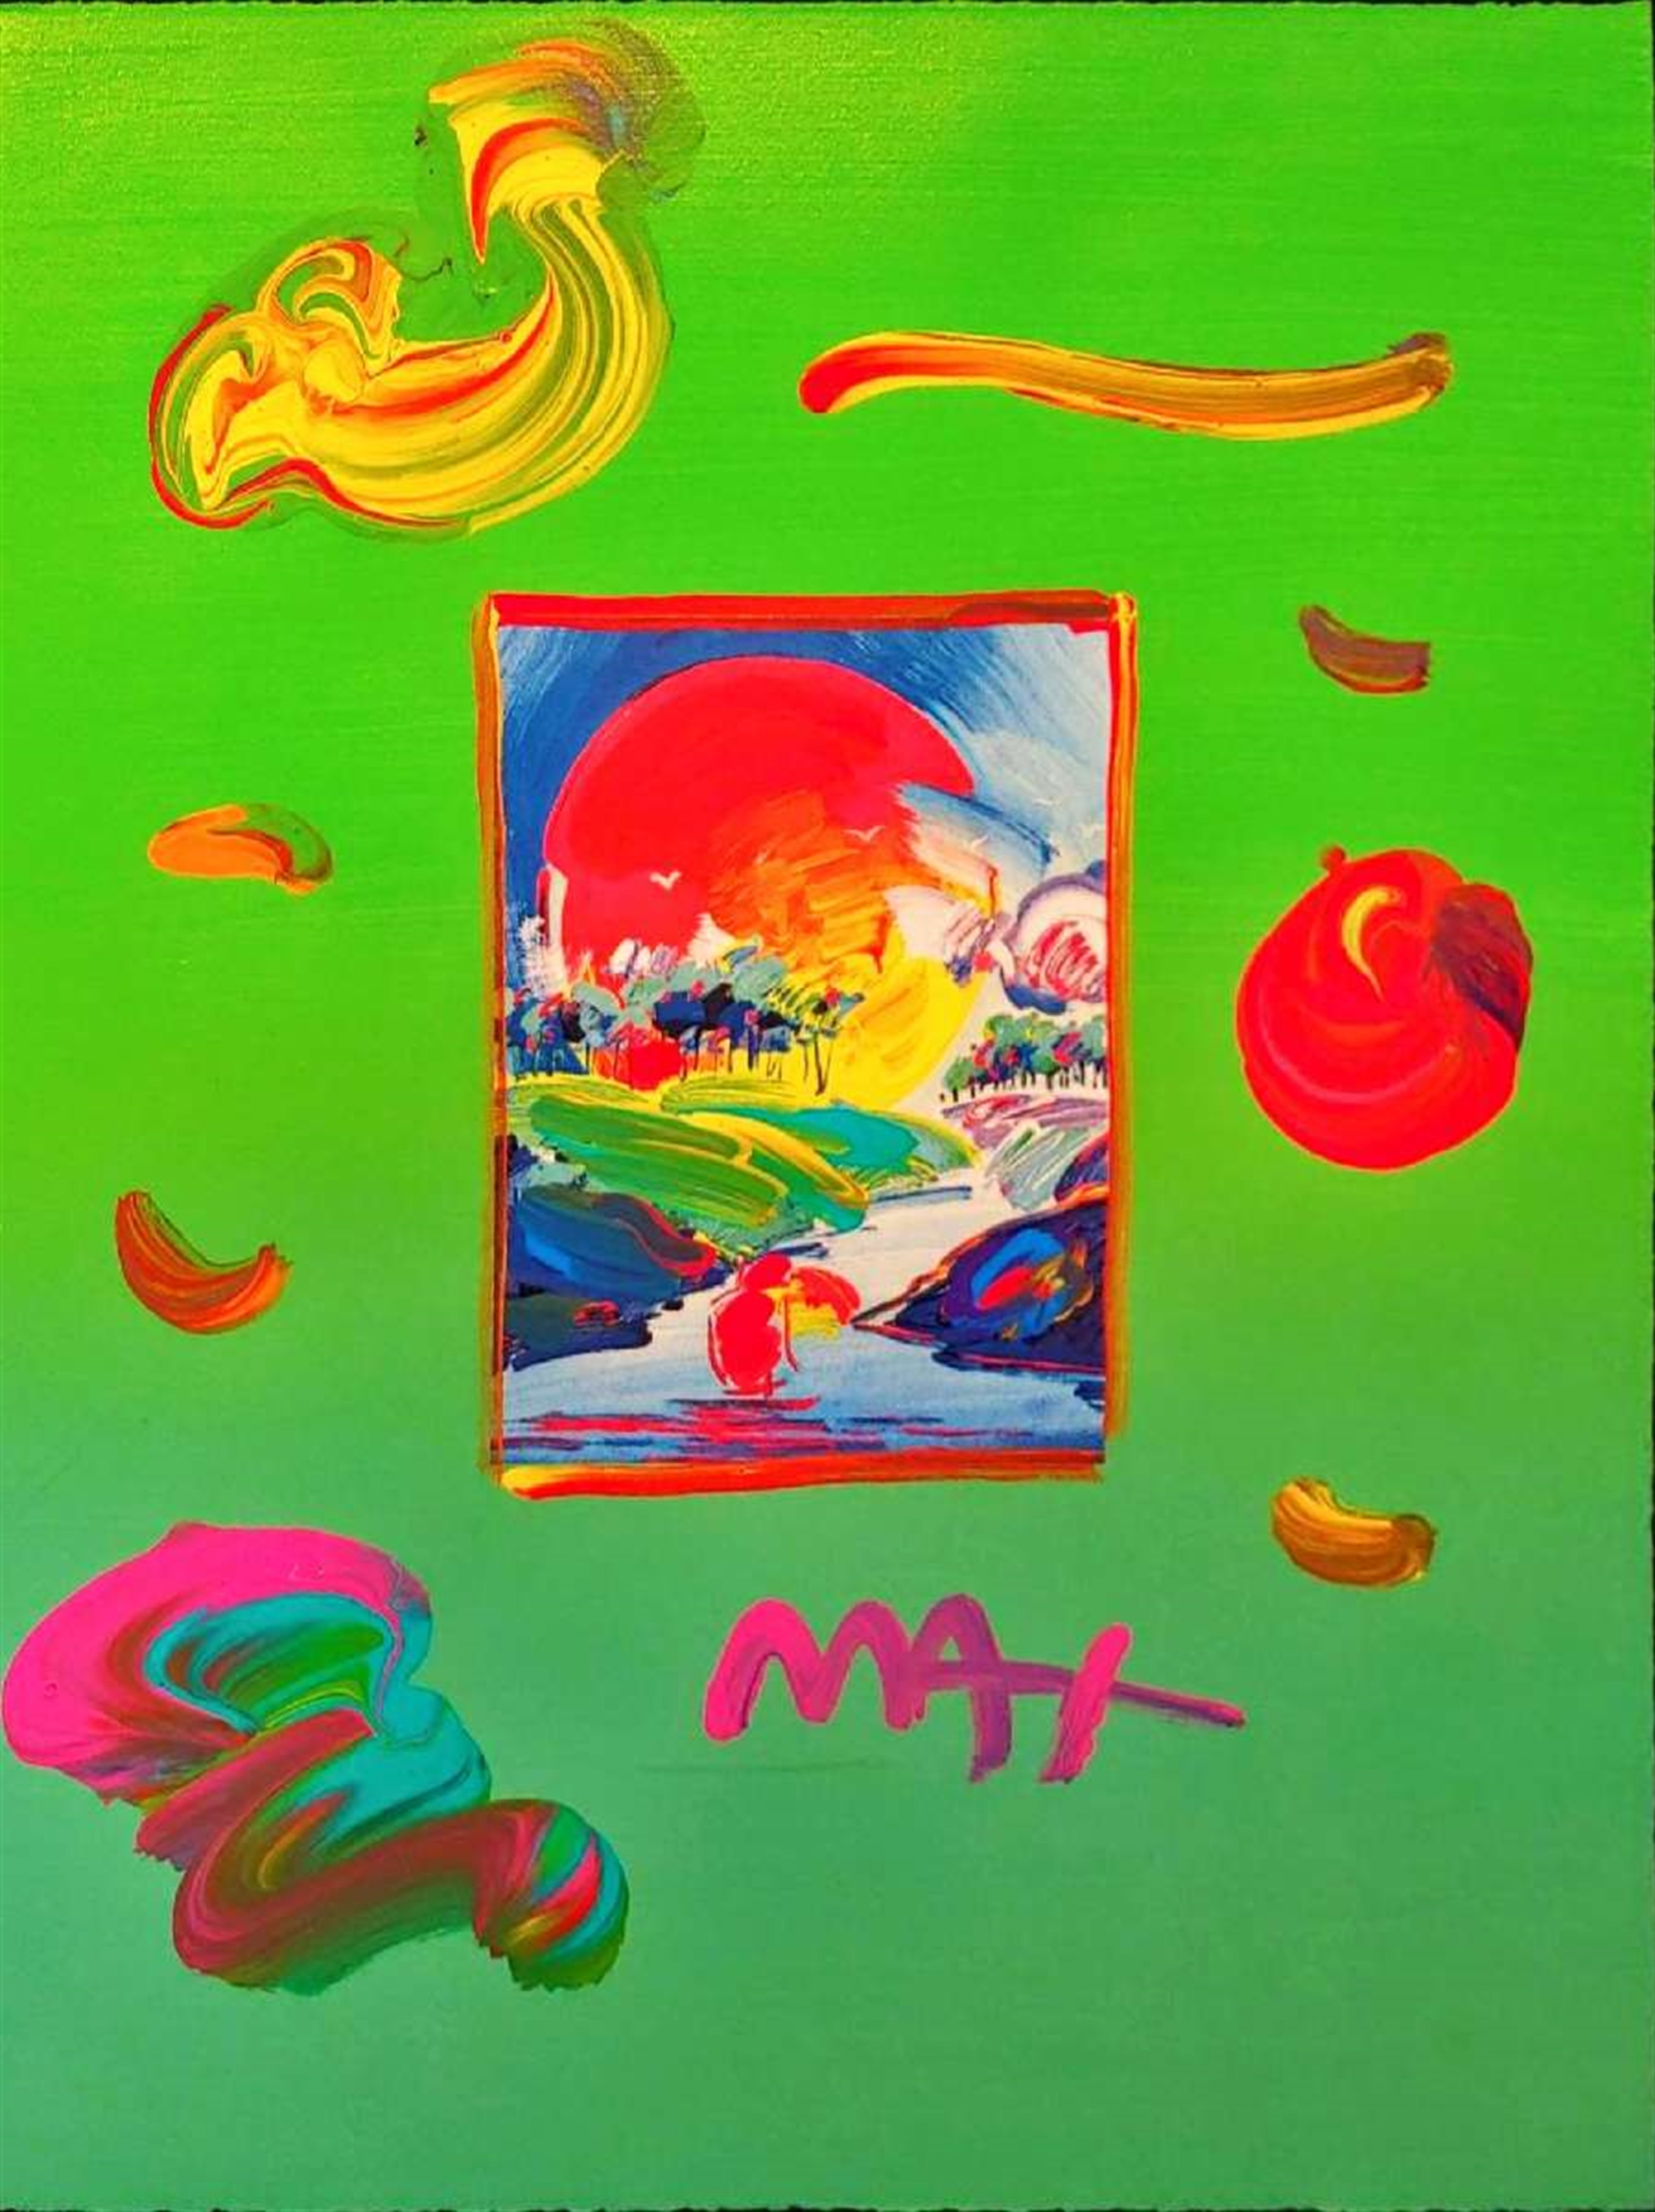 WITHOUT BORDERS by Peter Max